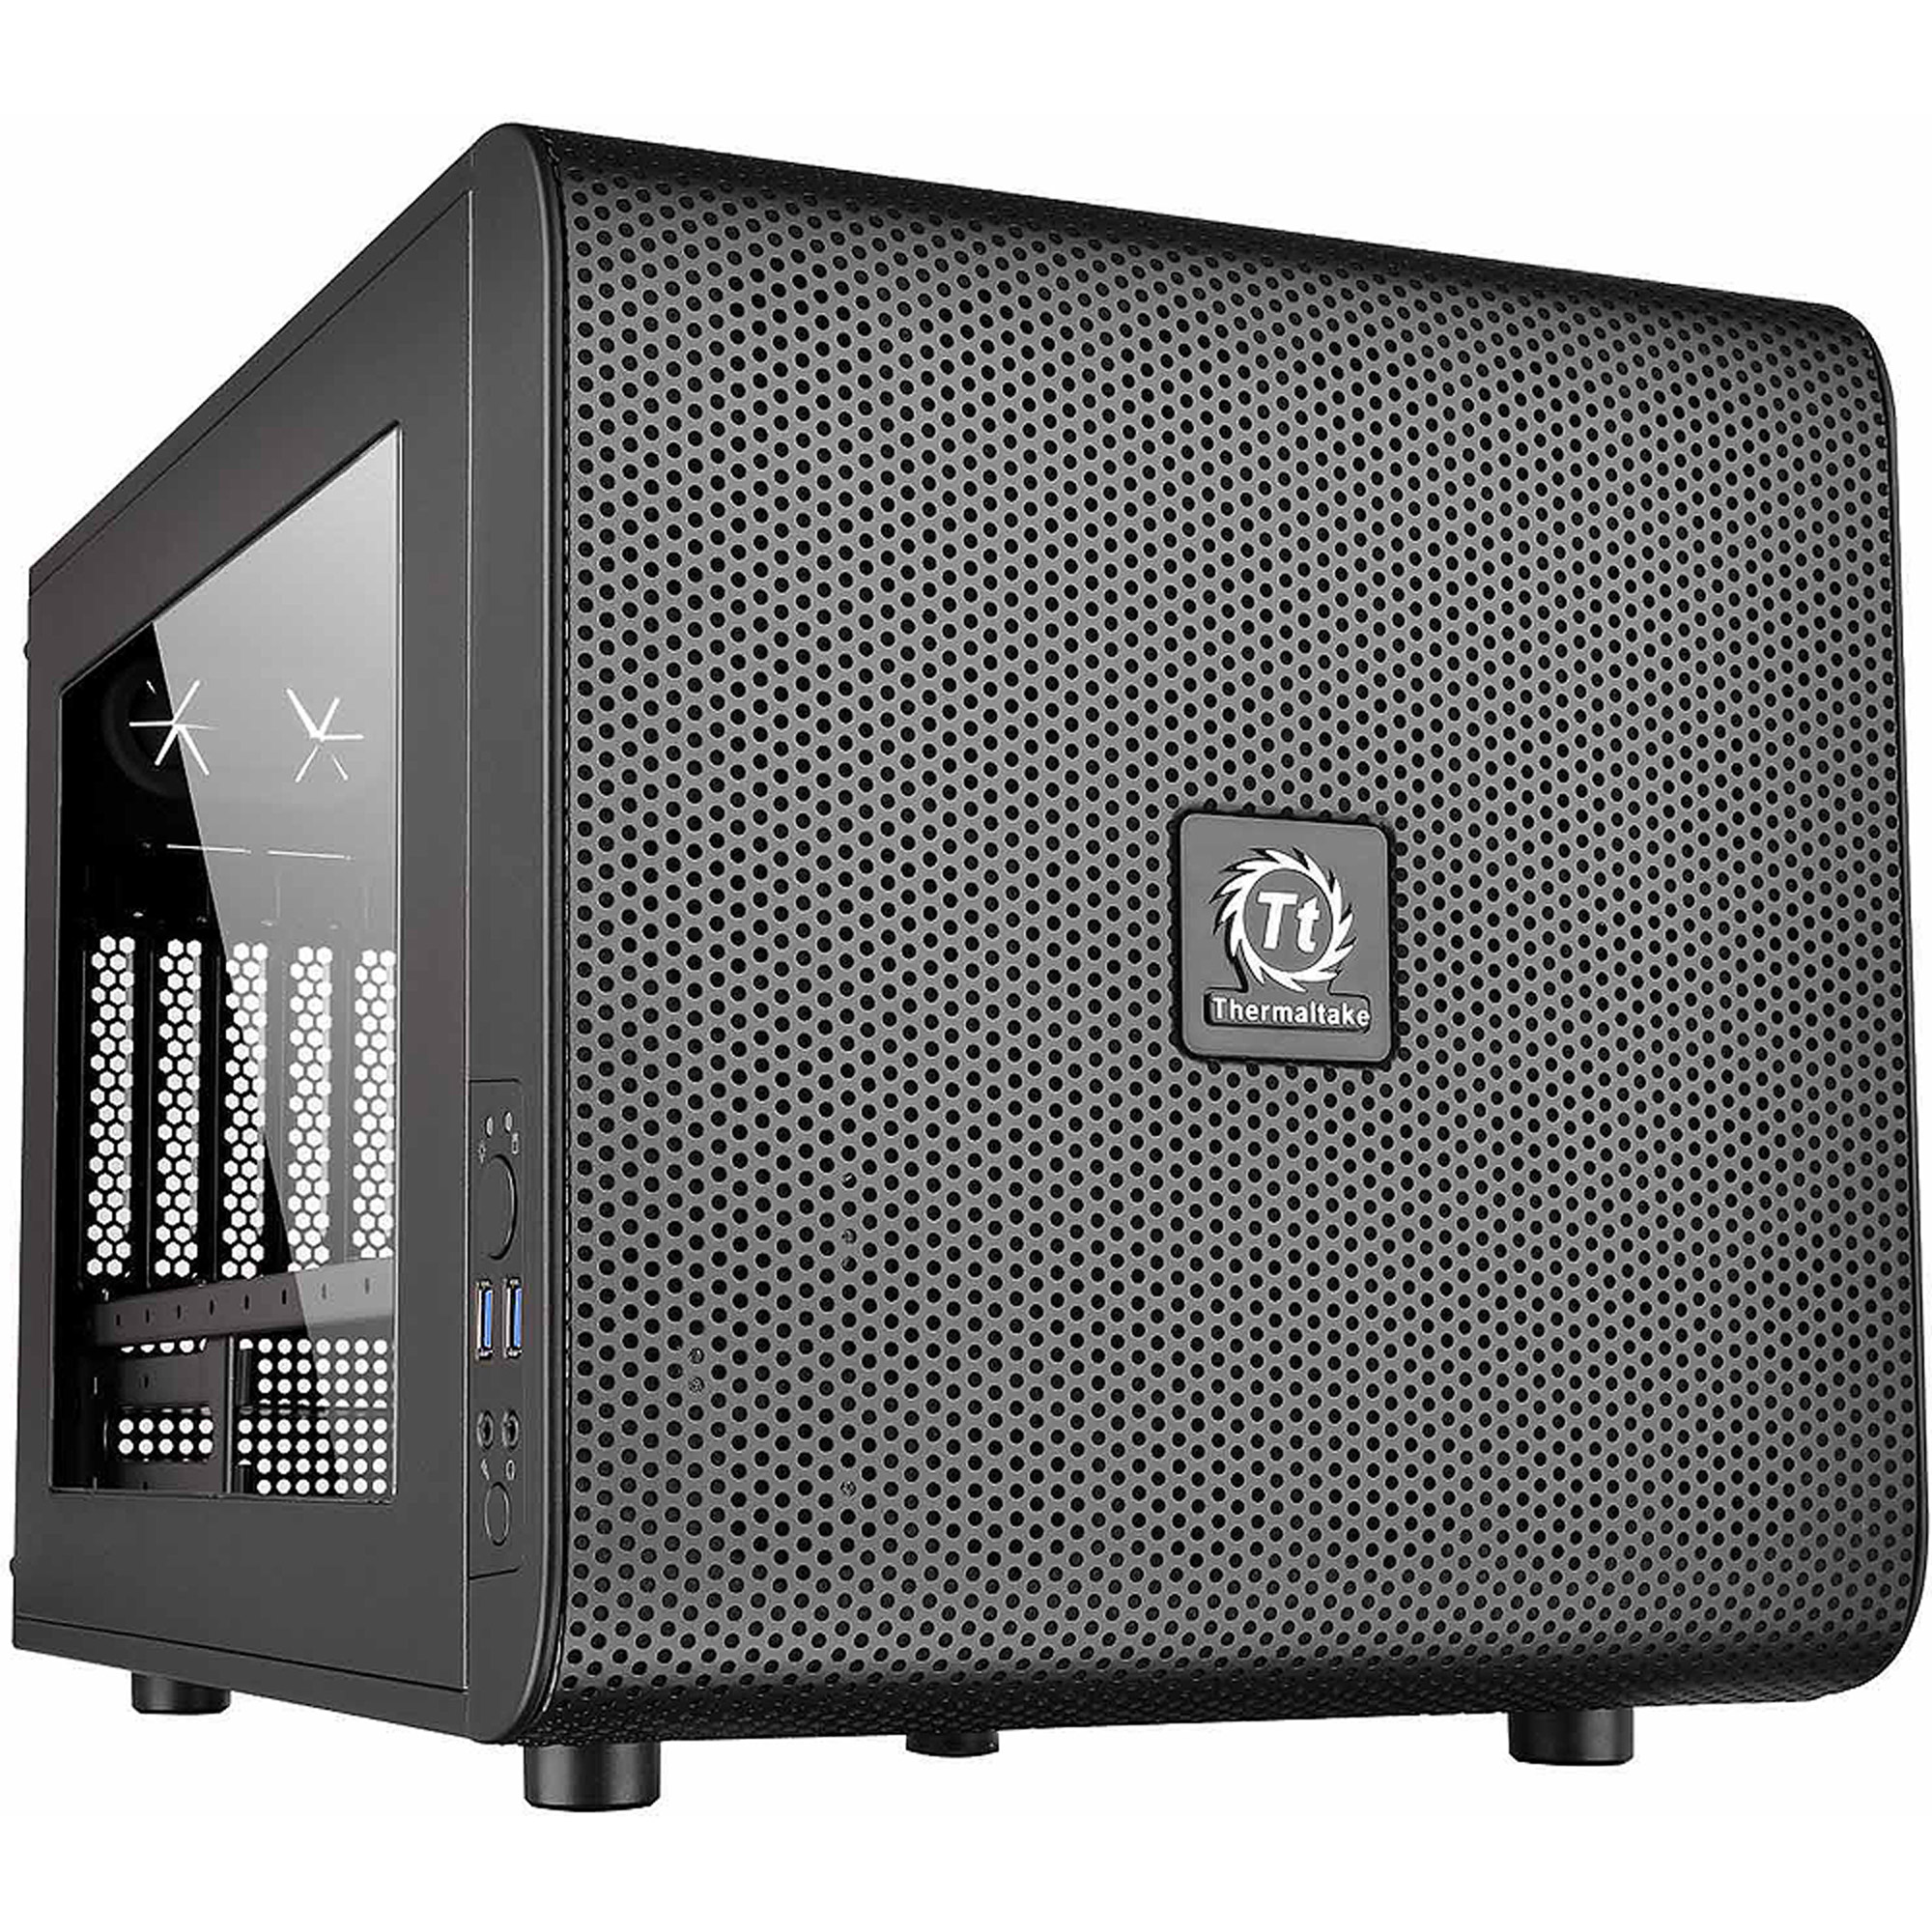 Thermaltake Core V21 Extreme Micro ATX Chassis